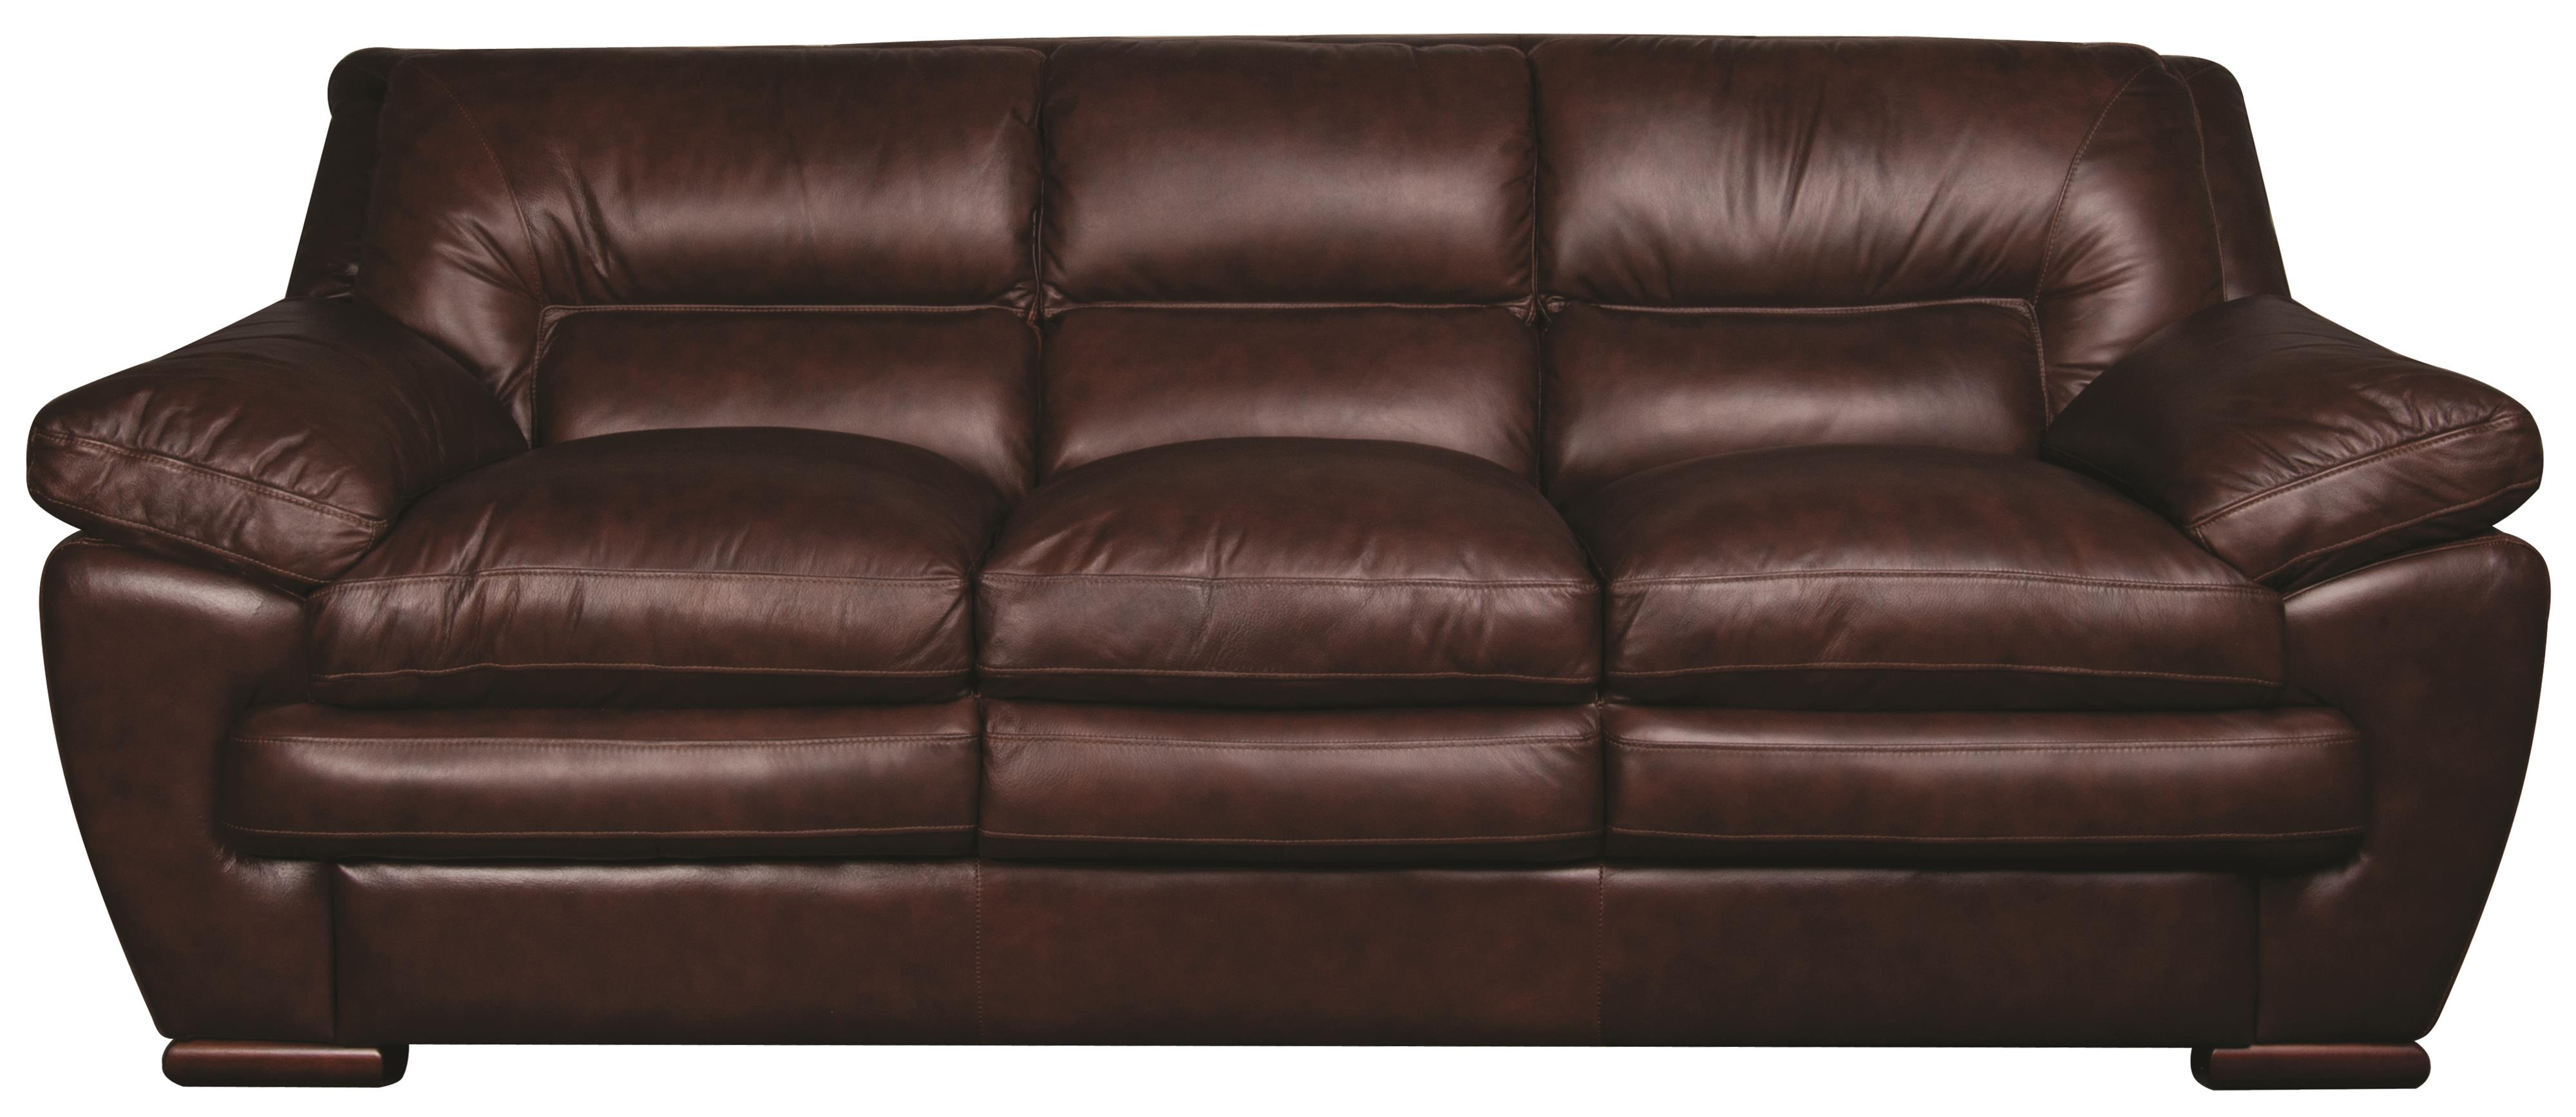 Austin 100% Leather Sofa Morris Home Sofa